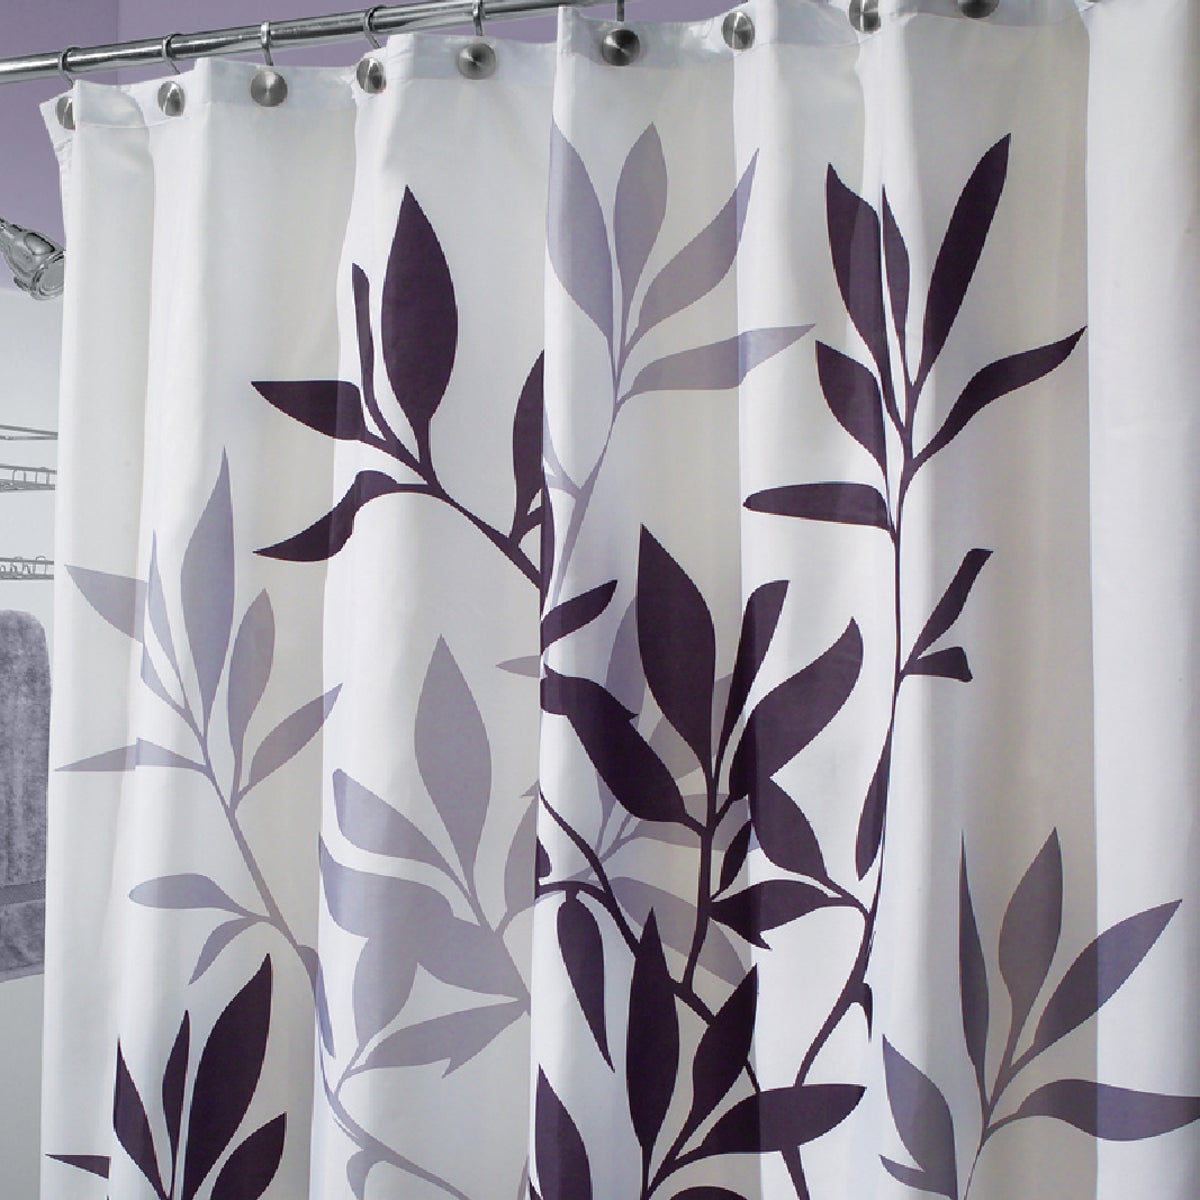 LEAVES SHOWER CURTAIN - 35620 by Interdesign Inc